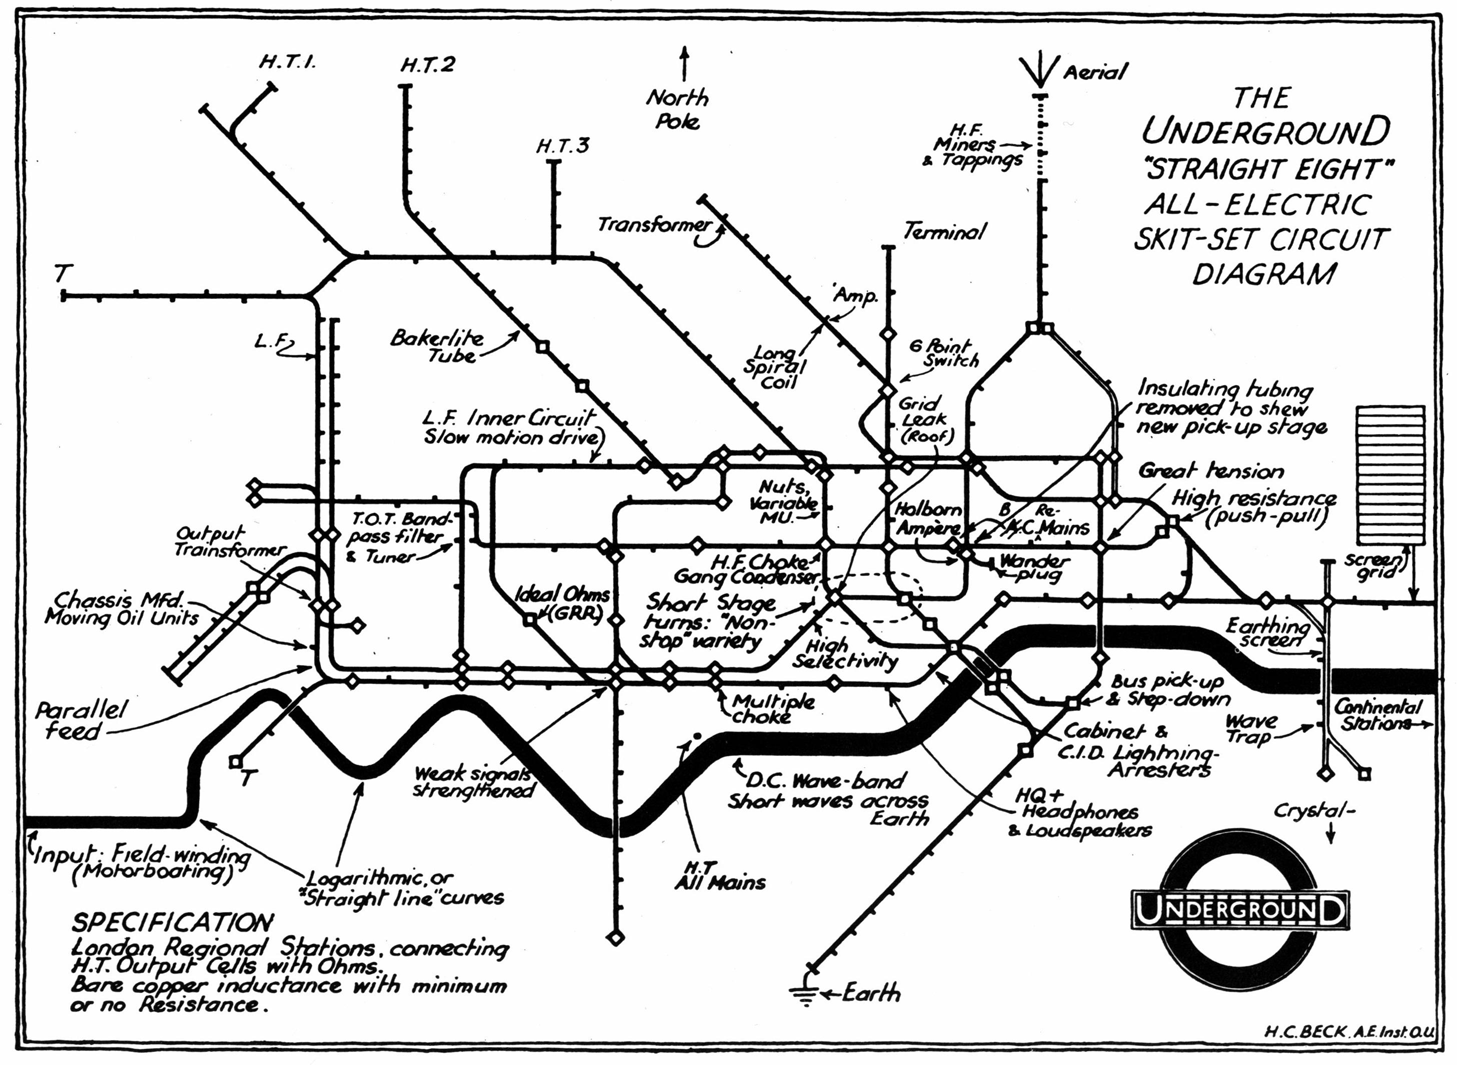 Henry Charles Beck Material Culture And The London Tube Map Of 1933 Train Schematics 4 Underground Straight Eight All Electric Skit Set Circuit Diagram March Drawing In Omnibus Tram Staff Magazine